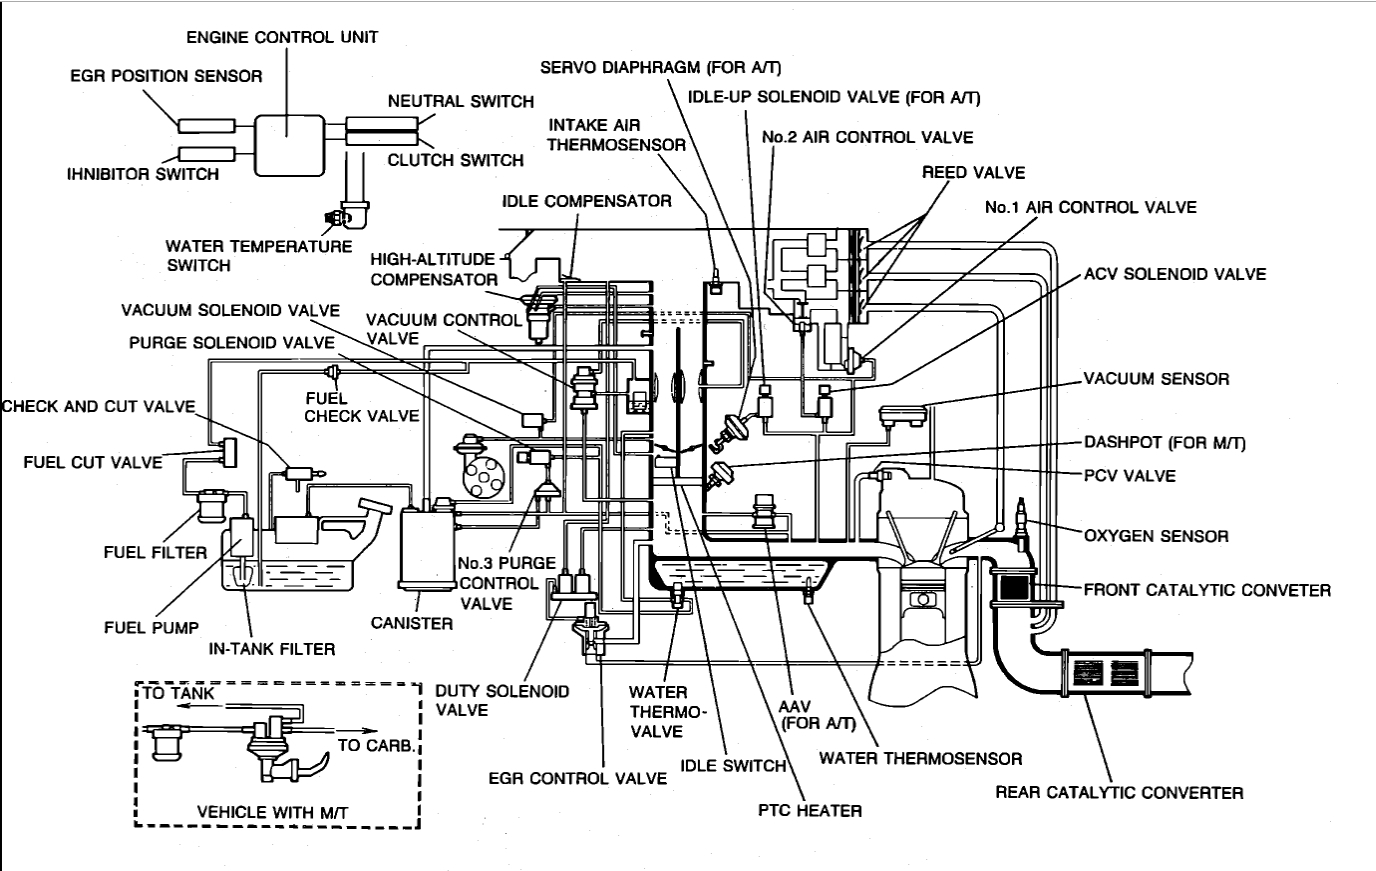 16 Valve Engine Diagram